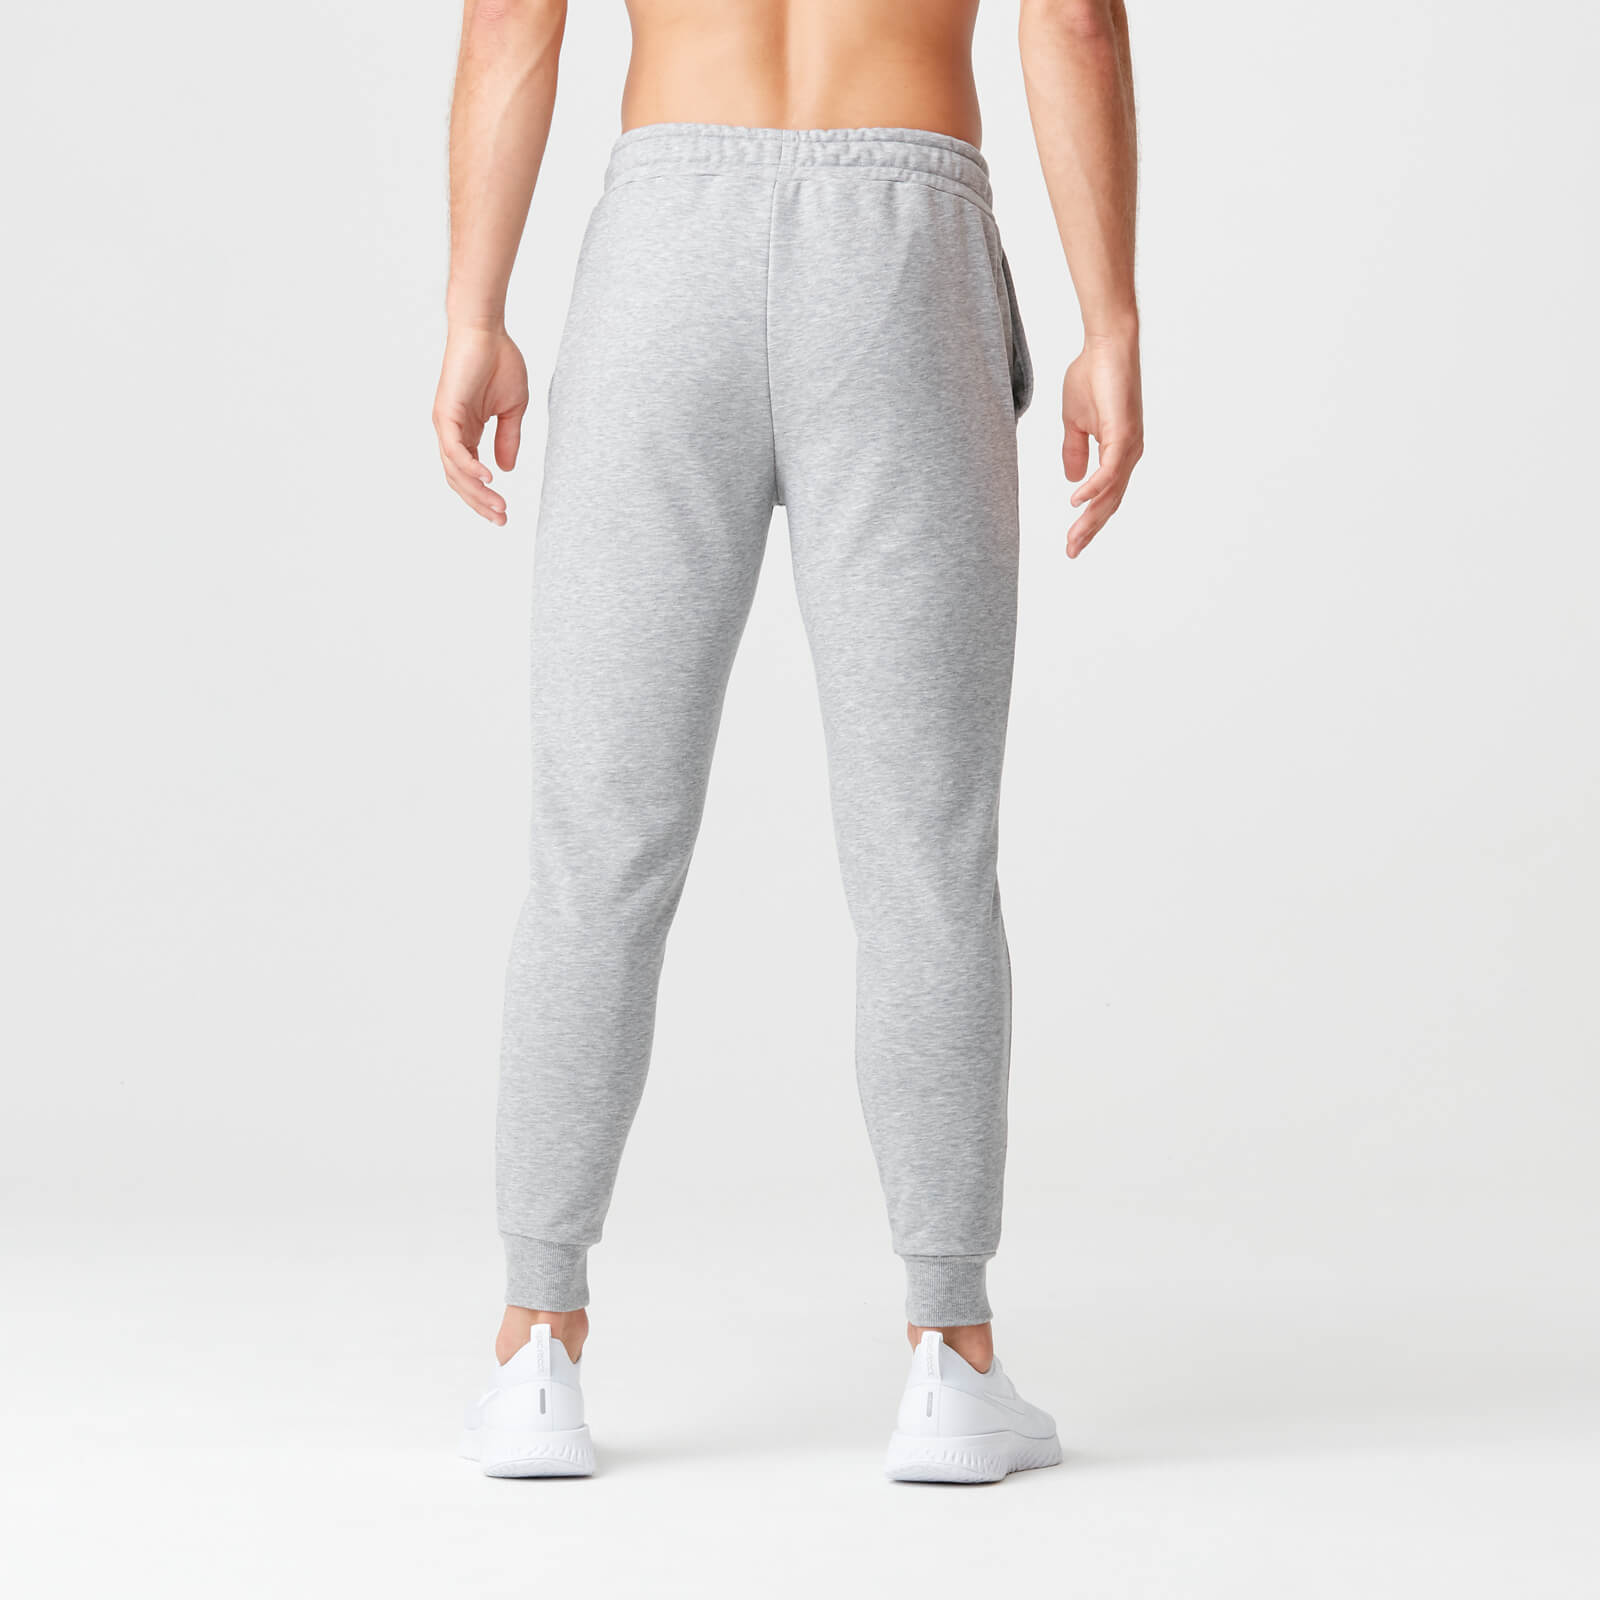 myprotein the original joggers - classic grey marl - s